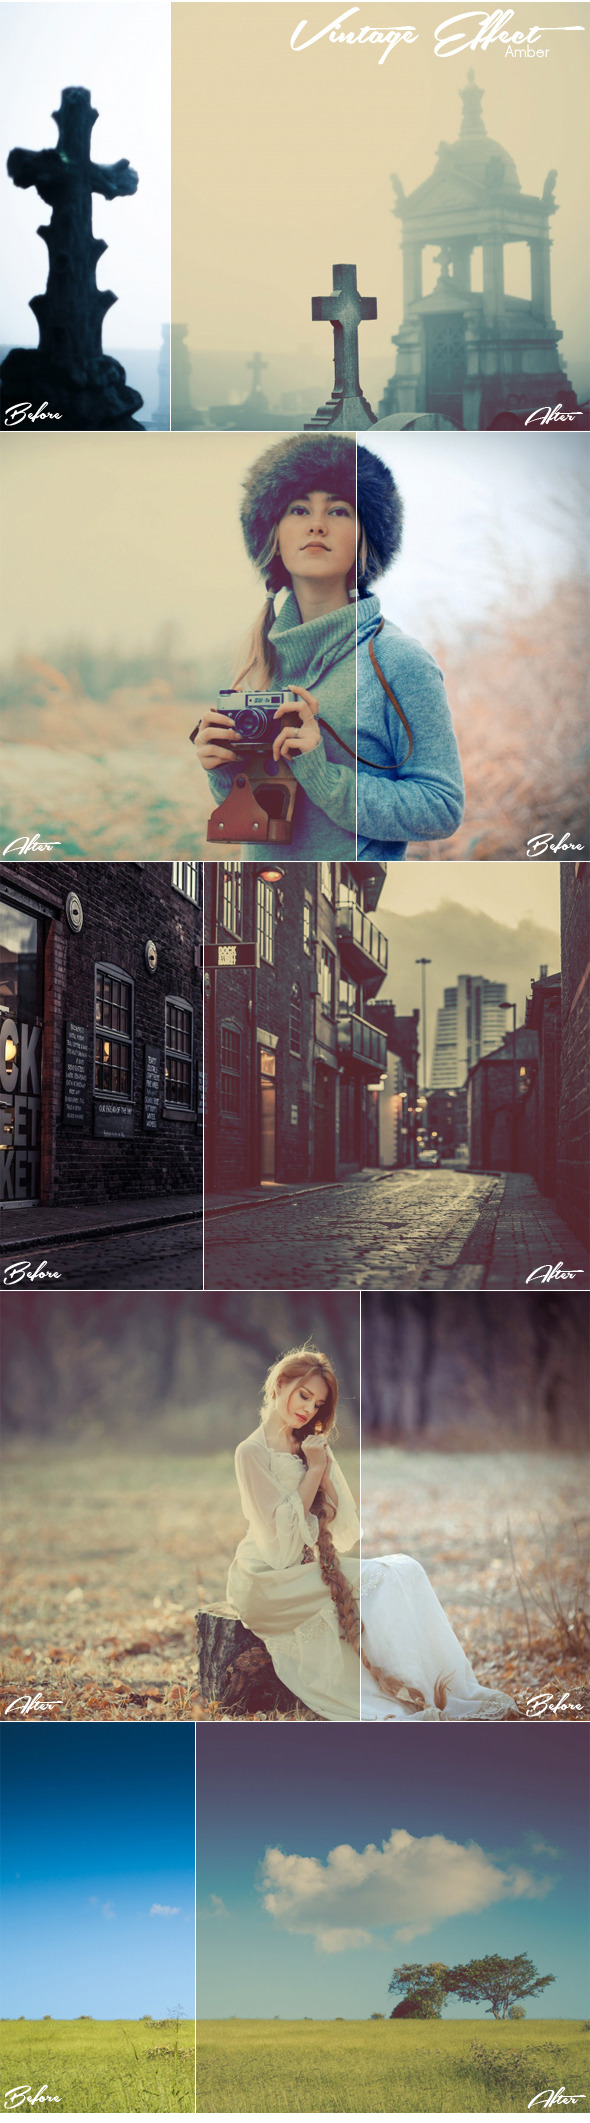 GraphicRiver Vintage Effect Amber 10997806